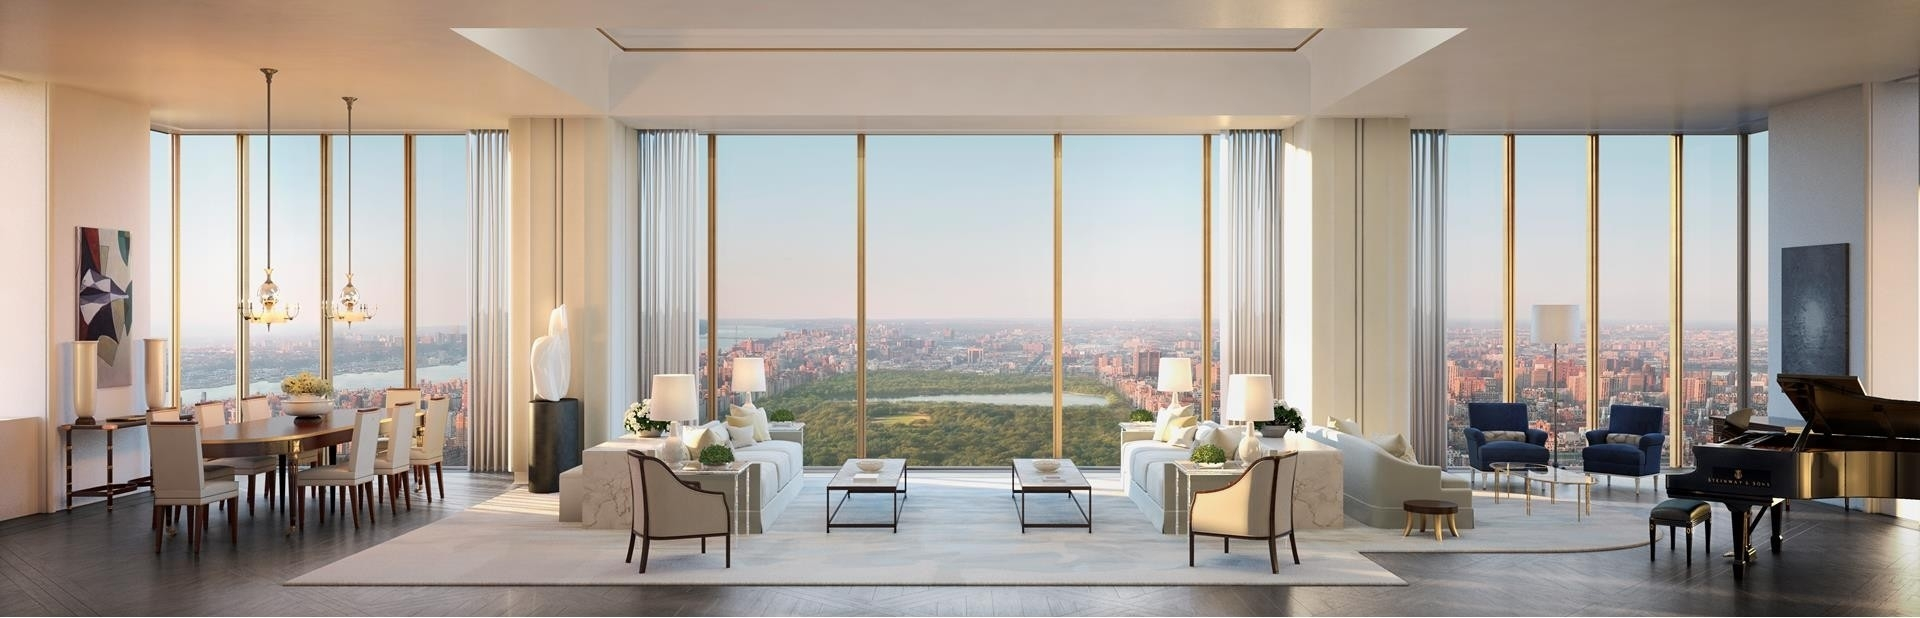 2. Condominiums for Sale at 111 West 57th St, PH72 Midtown West, New York, NY 10019